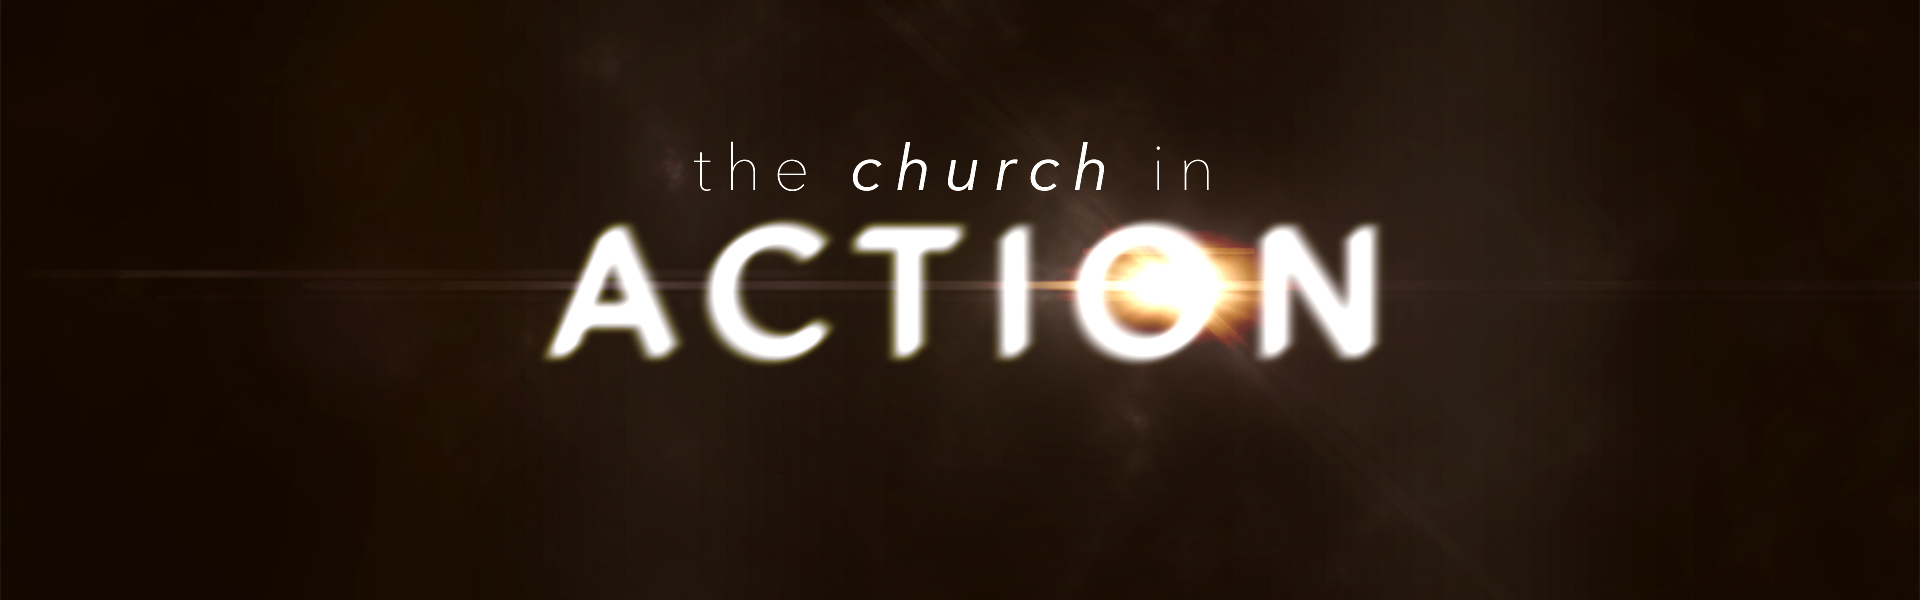 Church in Action